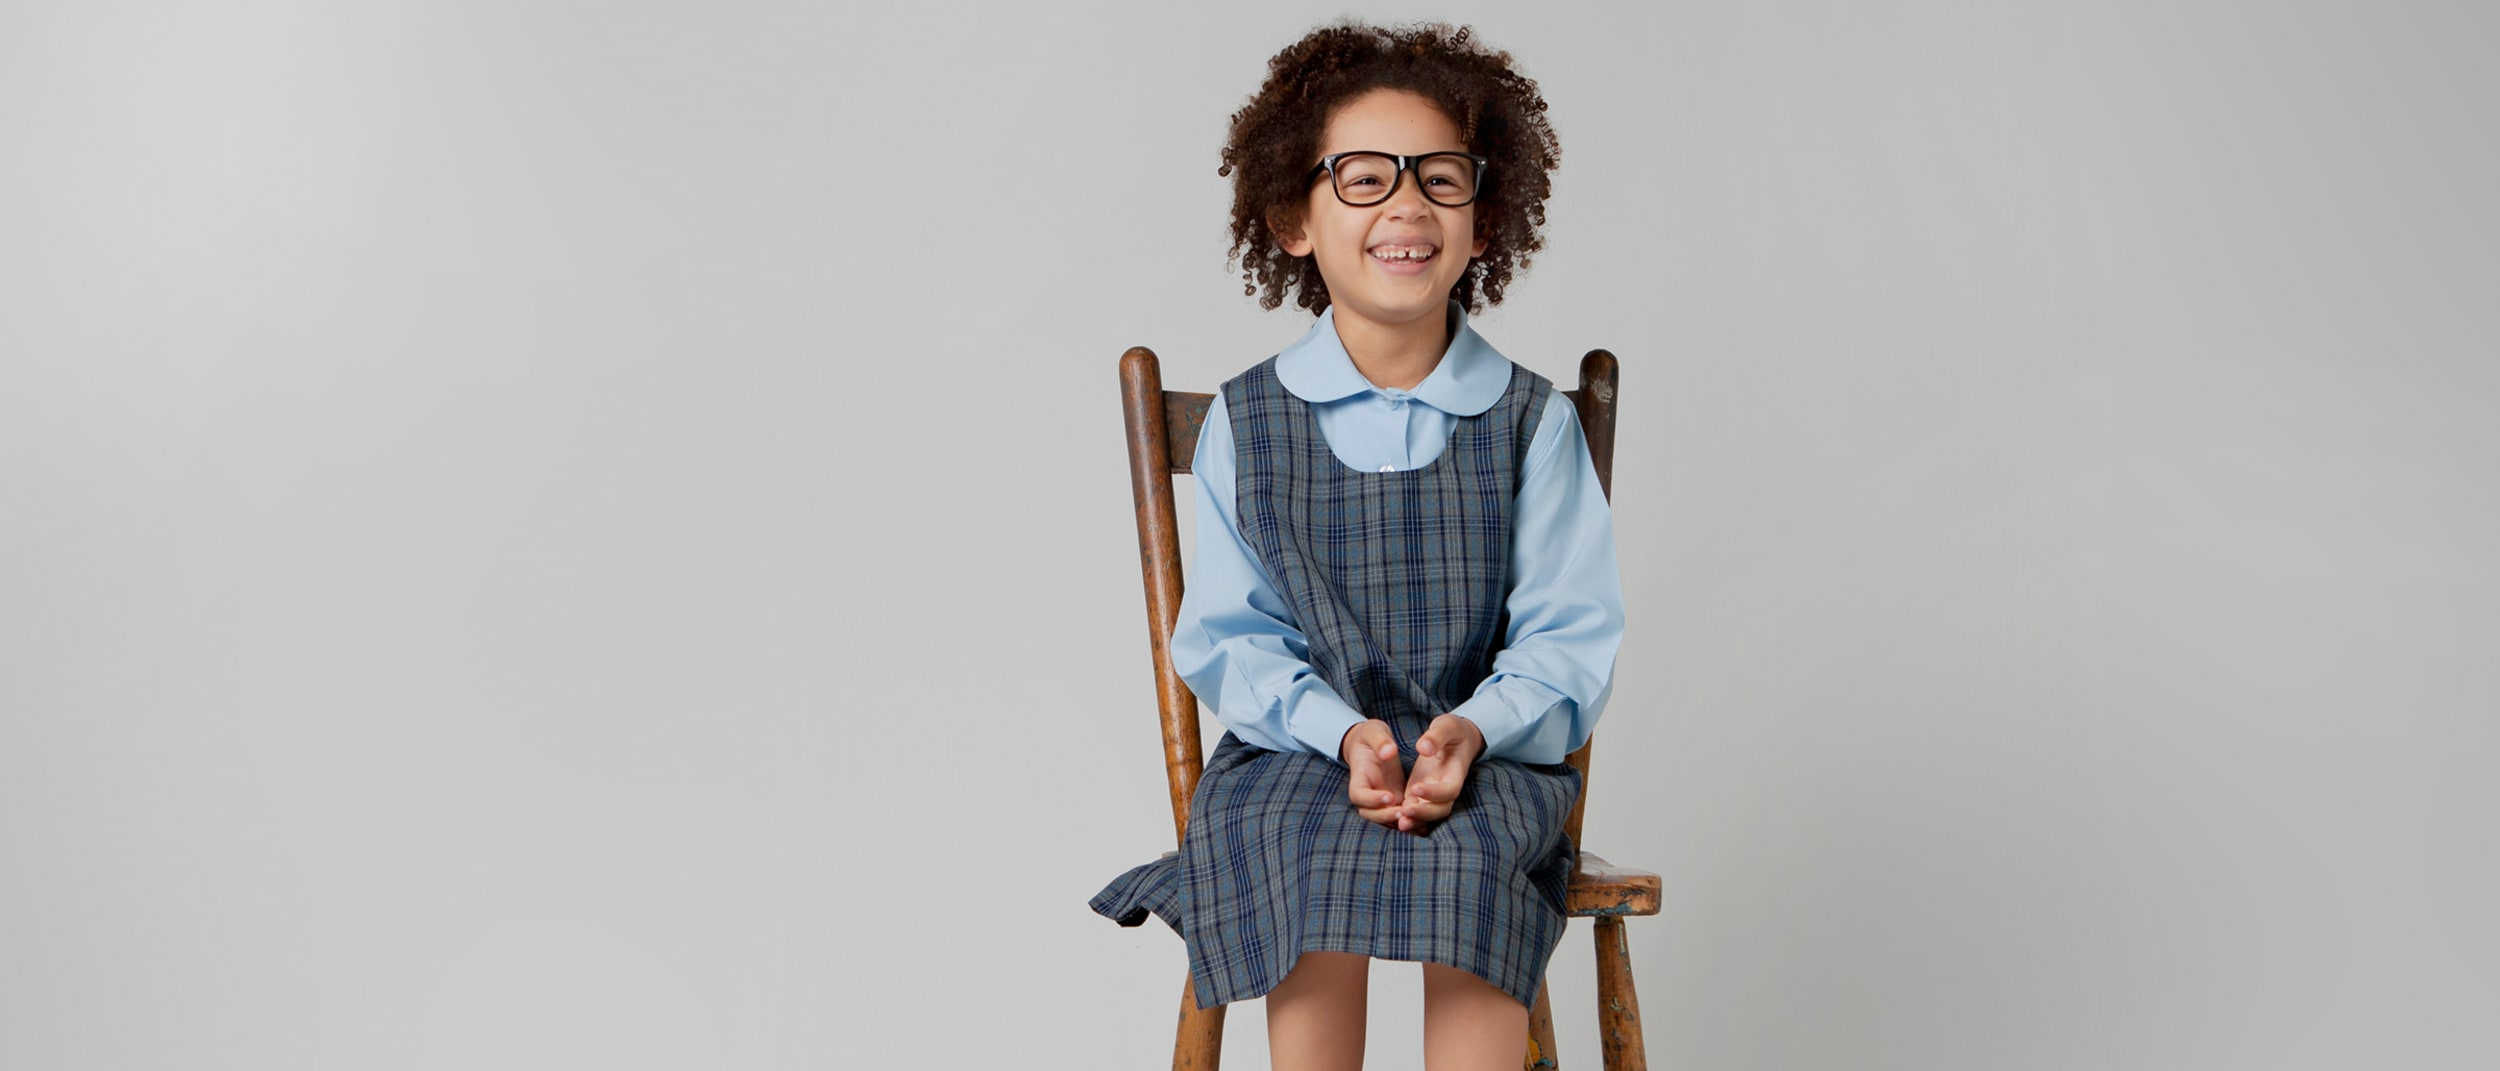 Tips to prepare your child for their first day of school